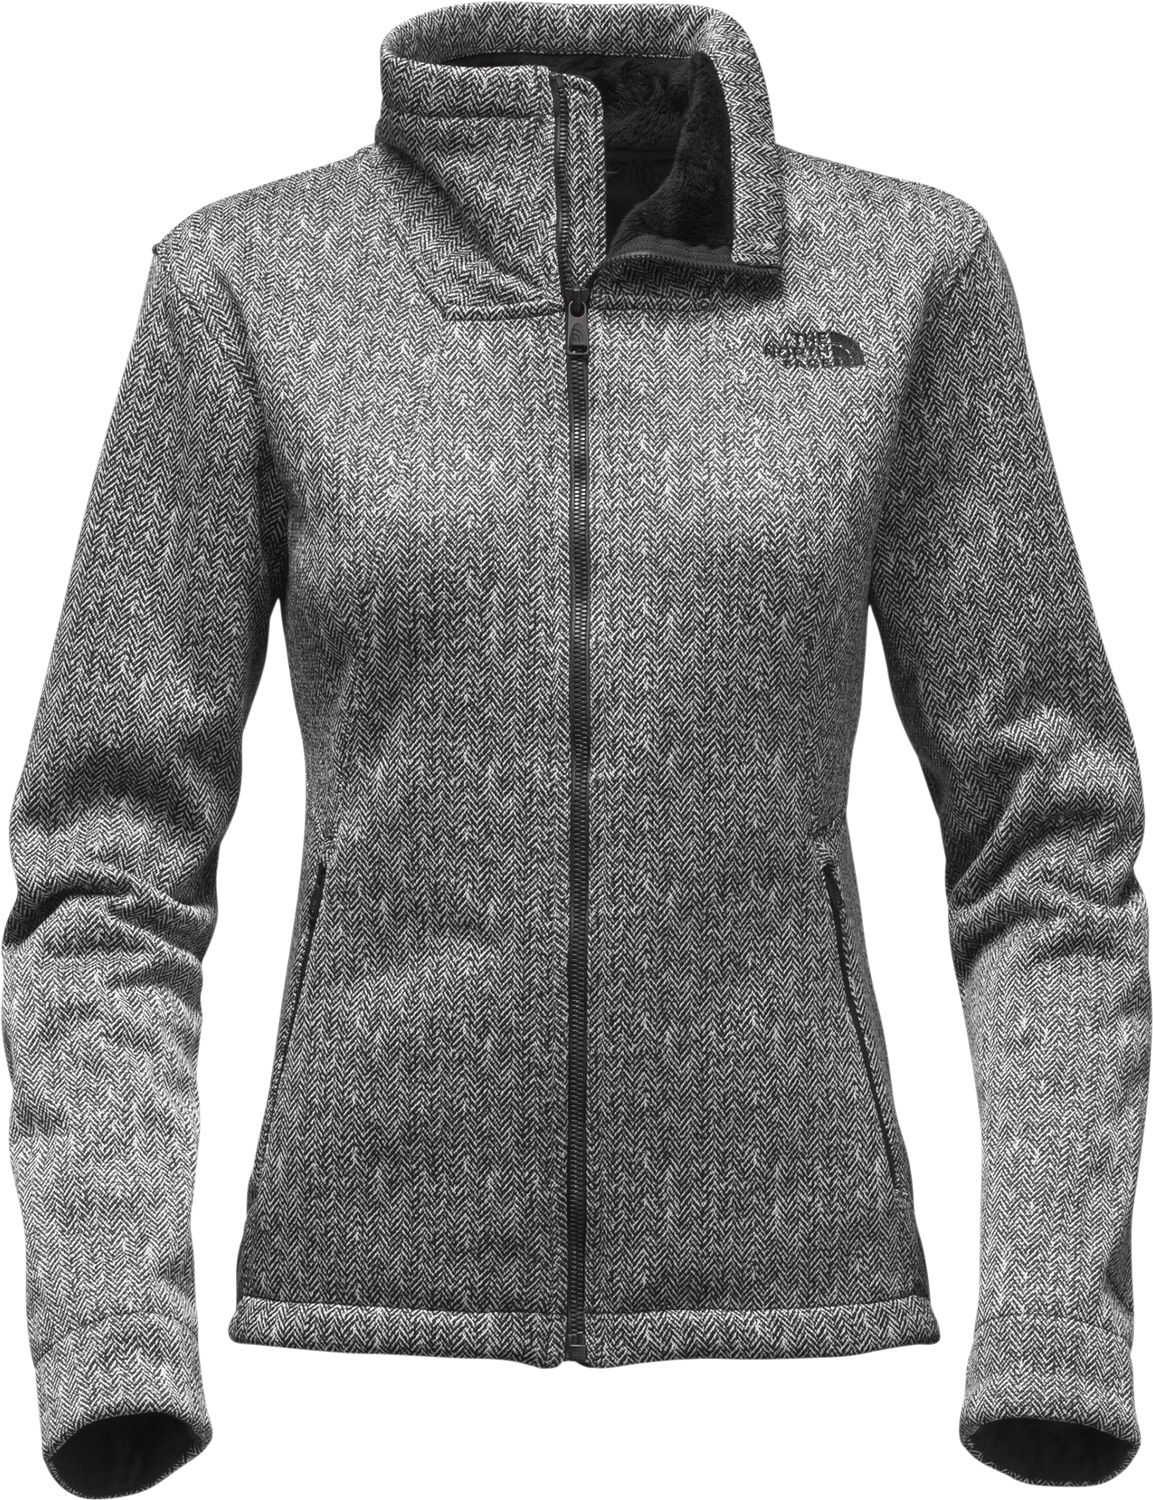 502d694a9 Shoptagr | The North Face Women's Apex Chromium Thermal Soft Shell ...